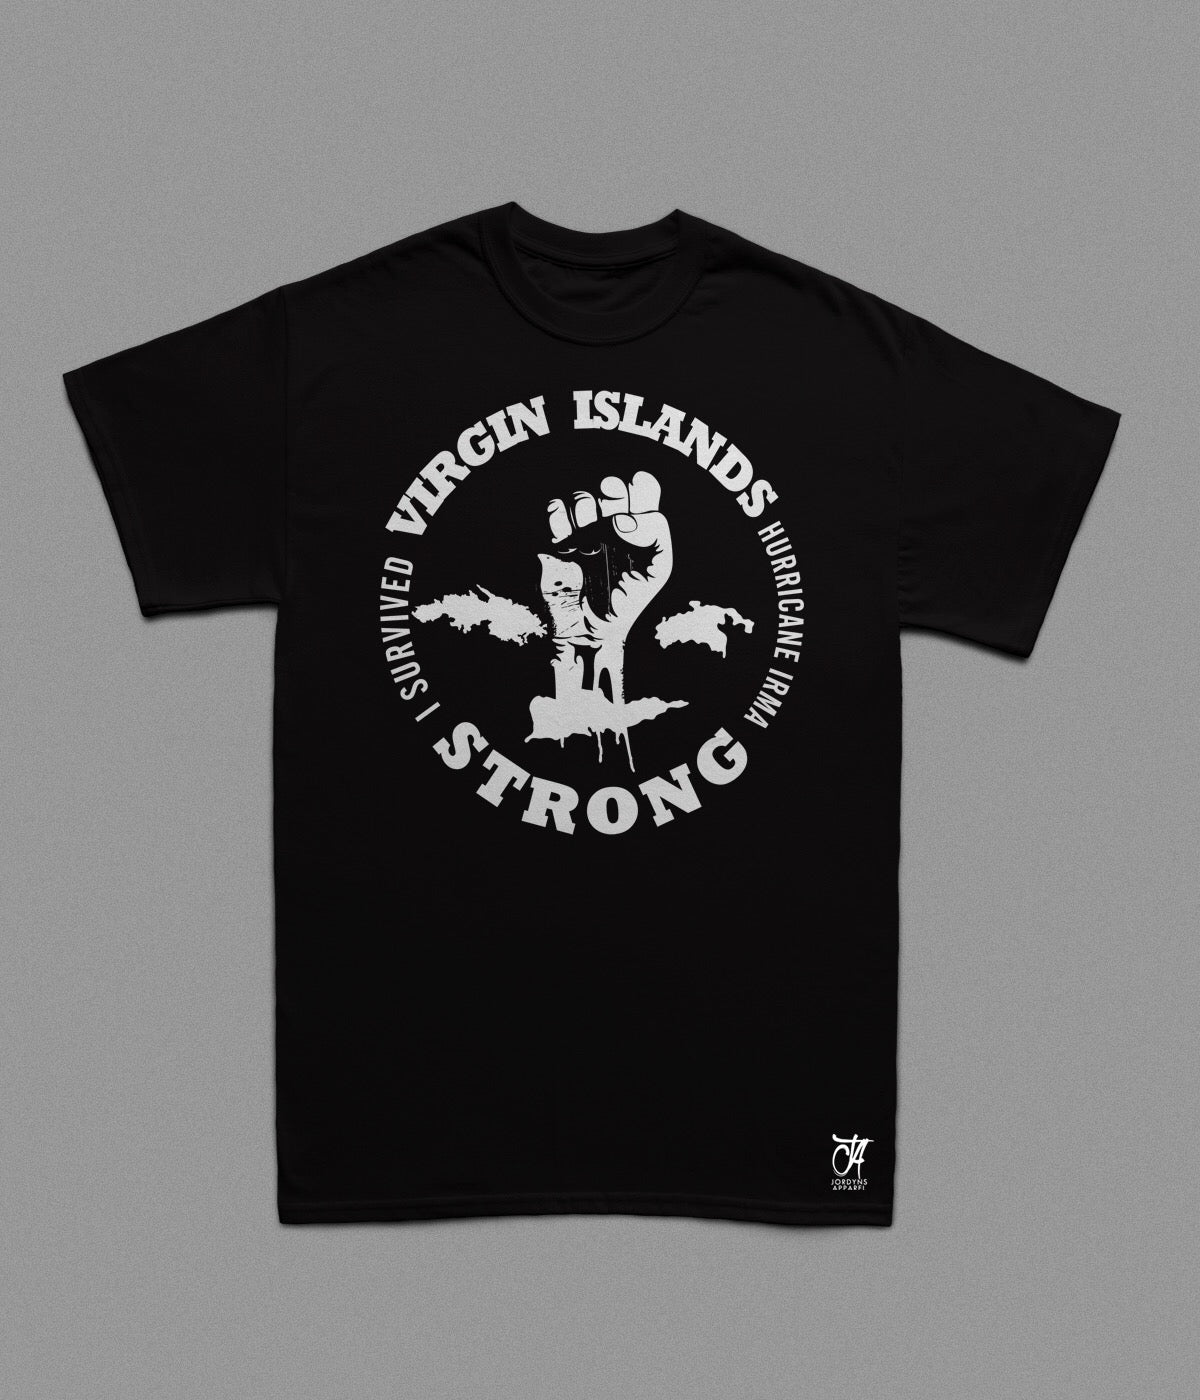 Virgin Islands Strong Men's Shirt